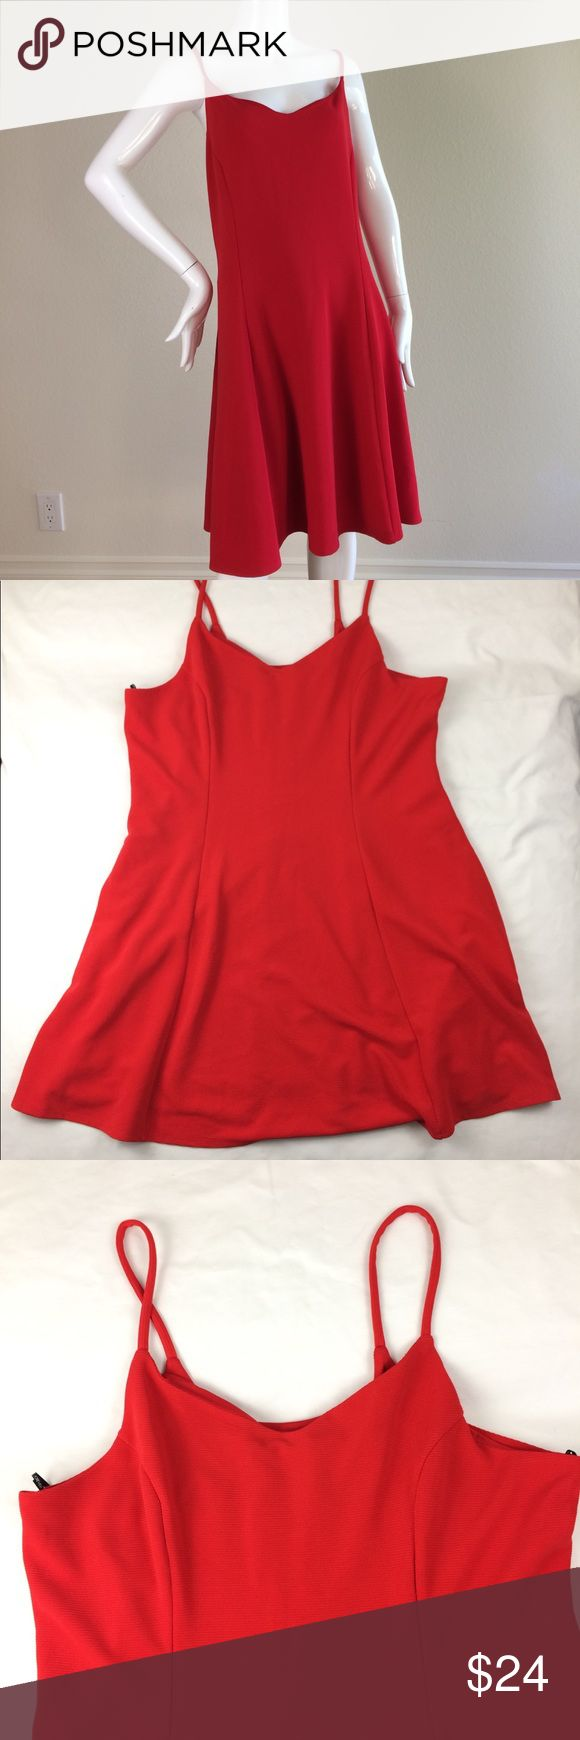 Red Holiday Dress - size 3XL Absolutely gorgeous and perfect for the Holidays. Like new. Forever 21 Plus dress, spaghetti straps, zipper in back, flare skirt.  MEASUREMENTS:  Length: 35 in (from top of dress) waist: 42 in bust: approx 47 in dress has approx 1-4 in stretch allowance.   K17007 Forever 21+ Dresses Midi